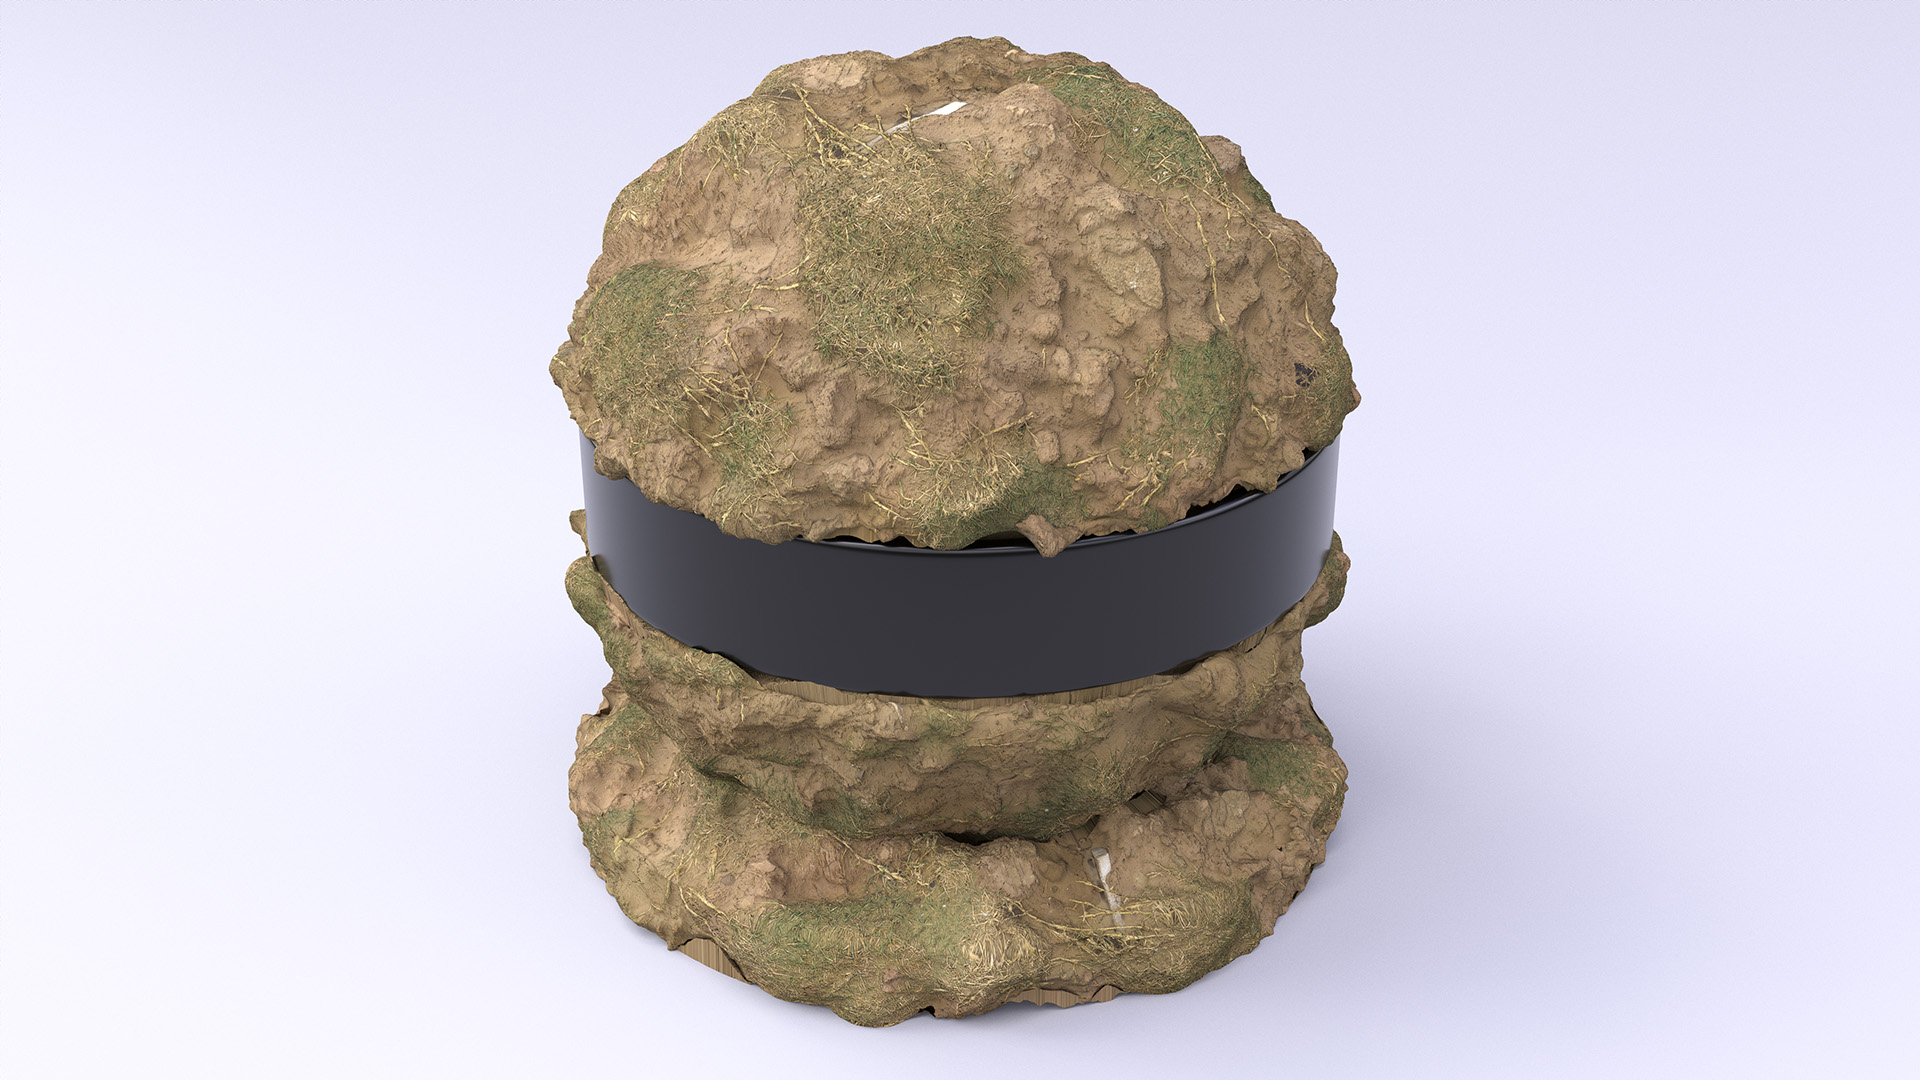 Figure 5: Closeup of the dirt shaderball from Figure 4. In this render, the shaderball is tessellated and displaced to a subpixel resolution.